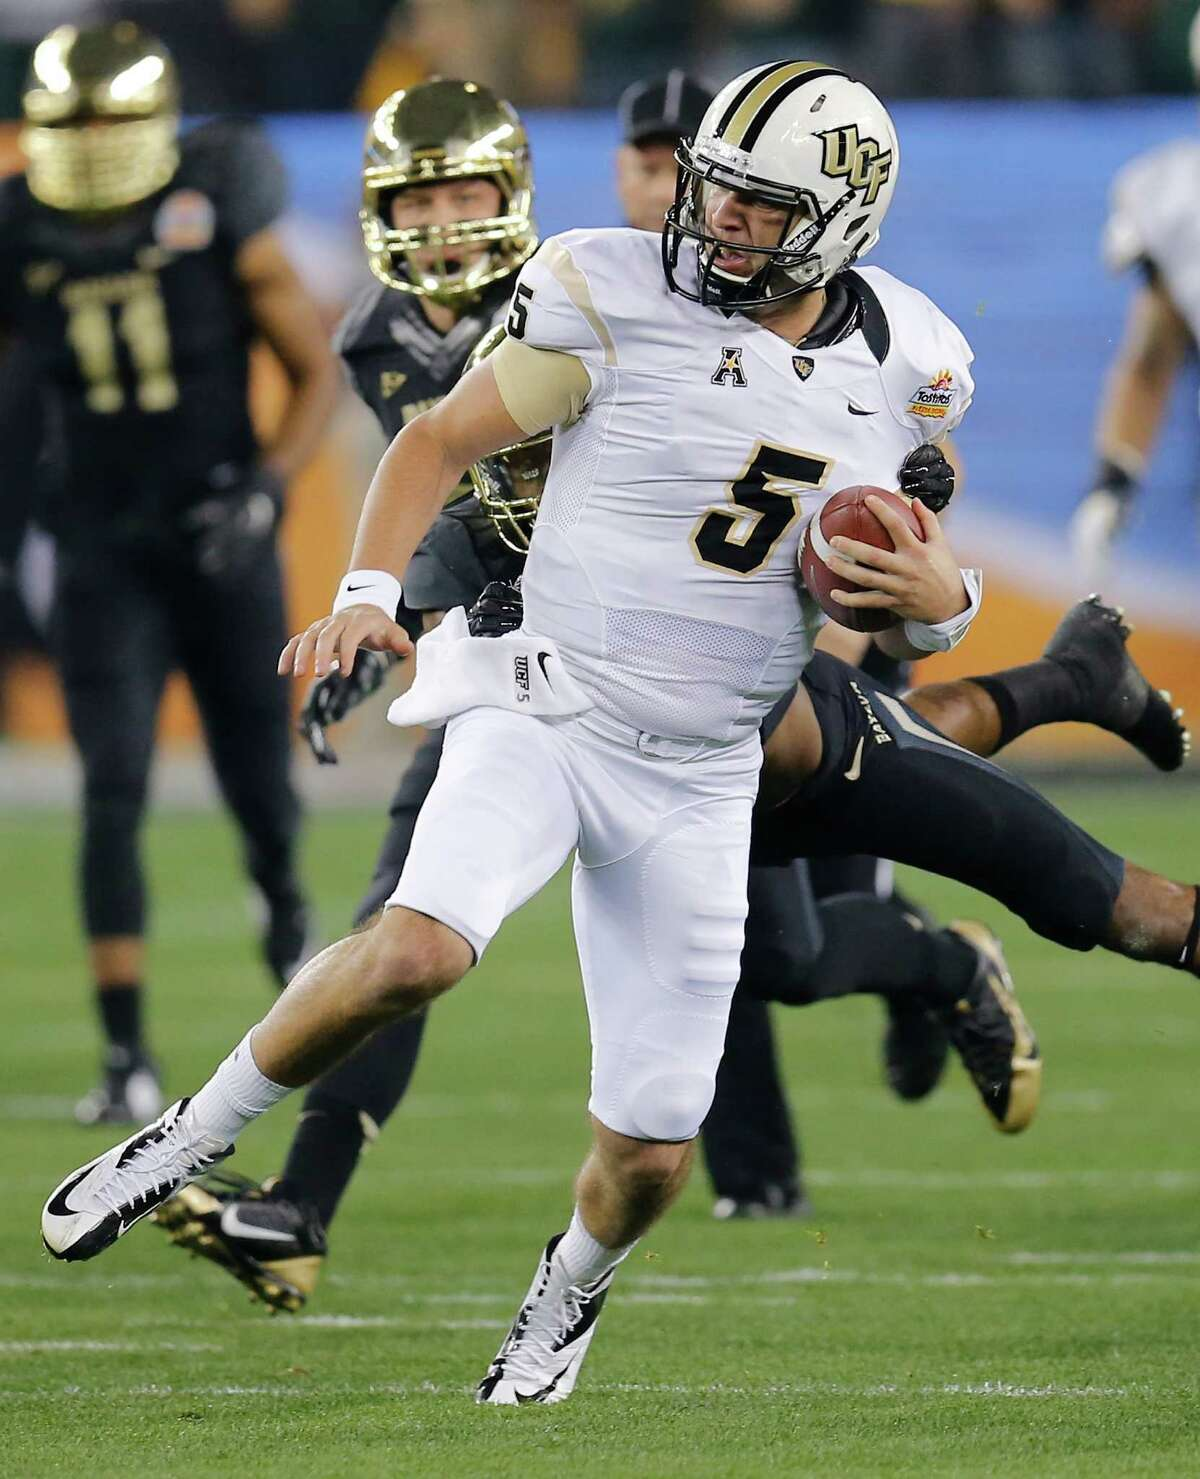 UCF's Blake Bortles hurt the Baylor defense with his feet (more than 11 yards per rush) and arm (three TD passes).